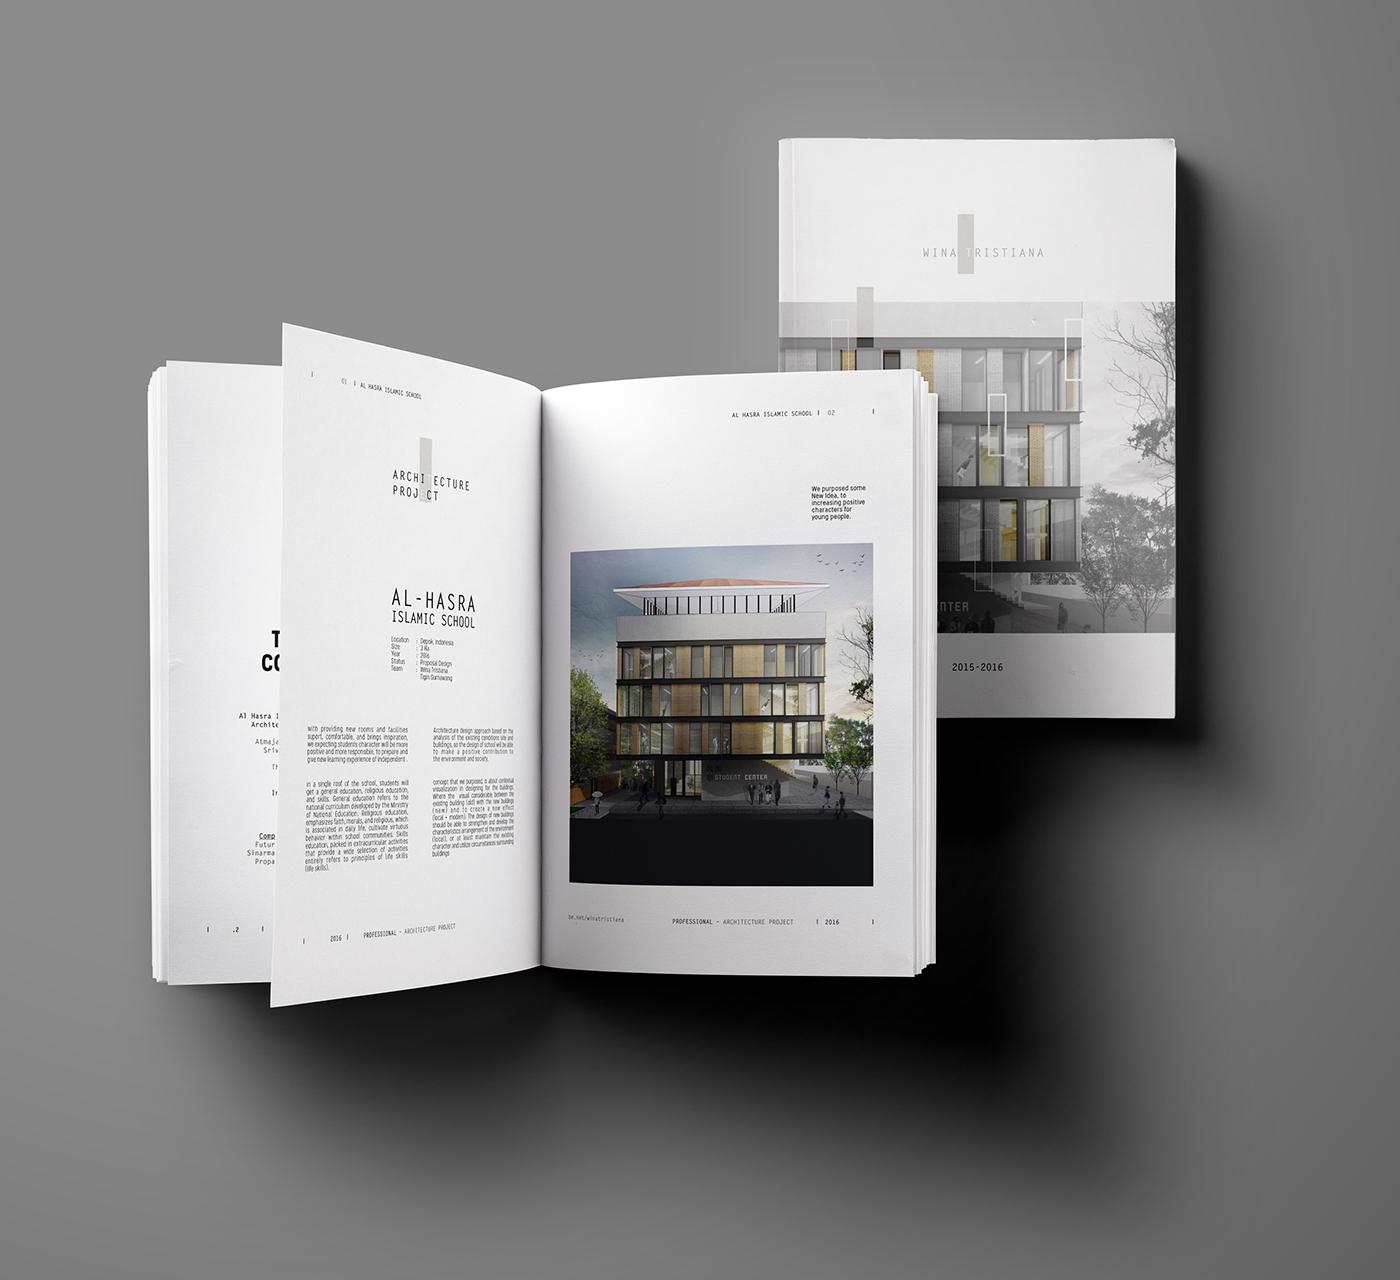 10 Outstanding Architecture Portfolio Example Covers - The